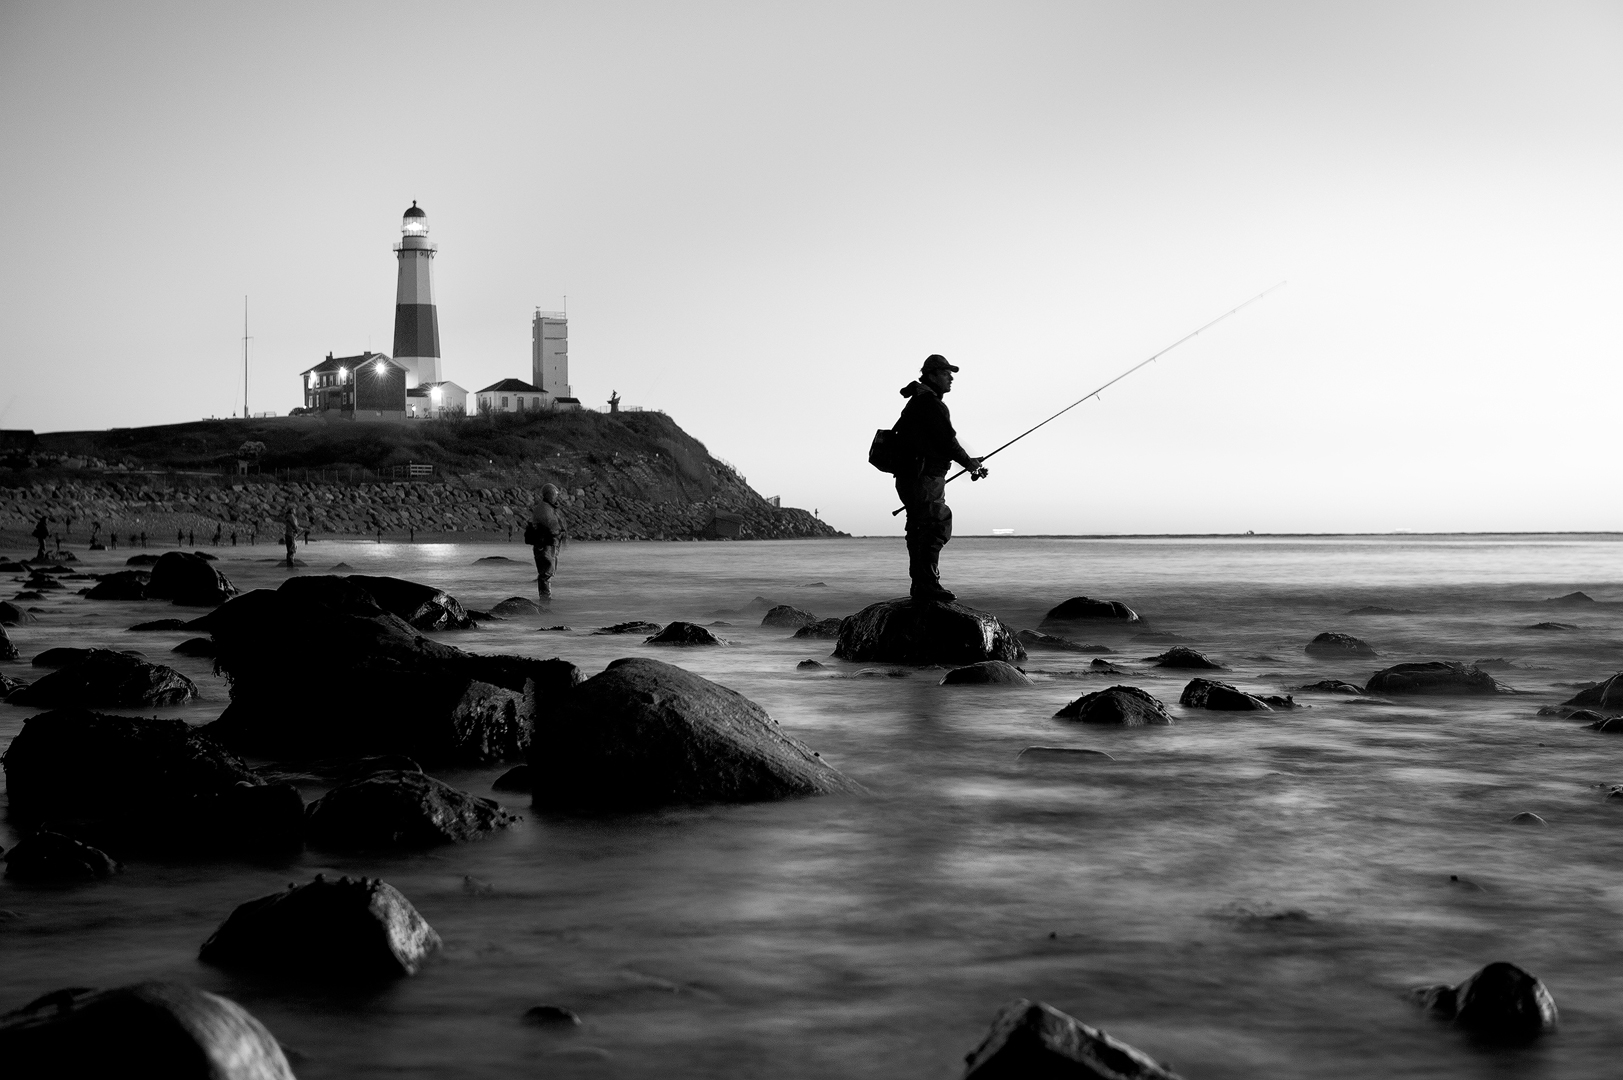 Montauk Point Lighthouse, New York, Fishermen's Heart, photo